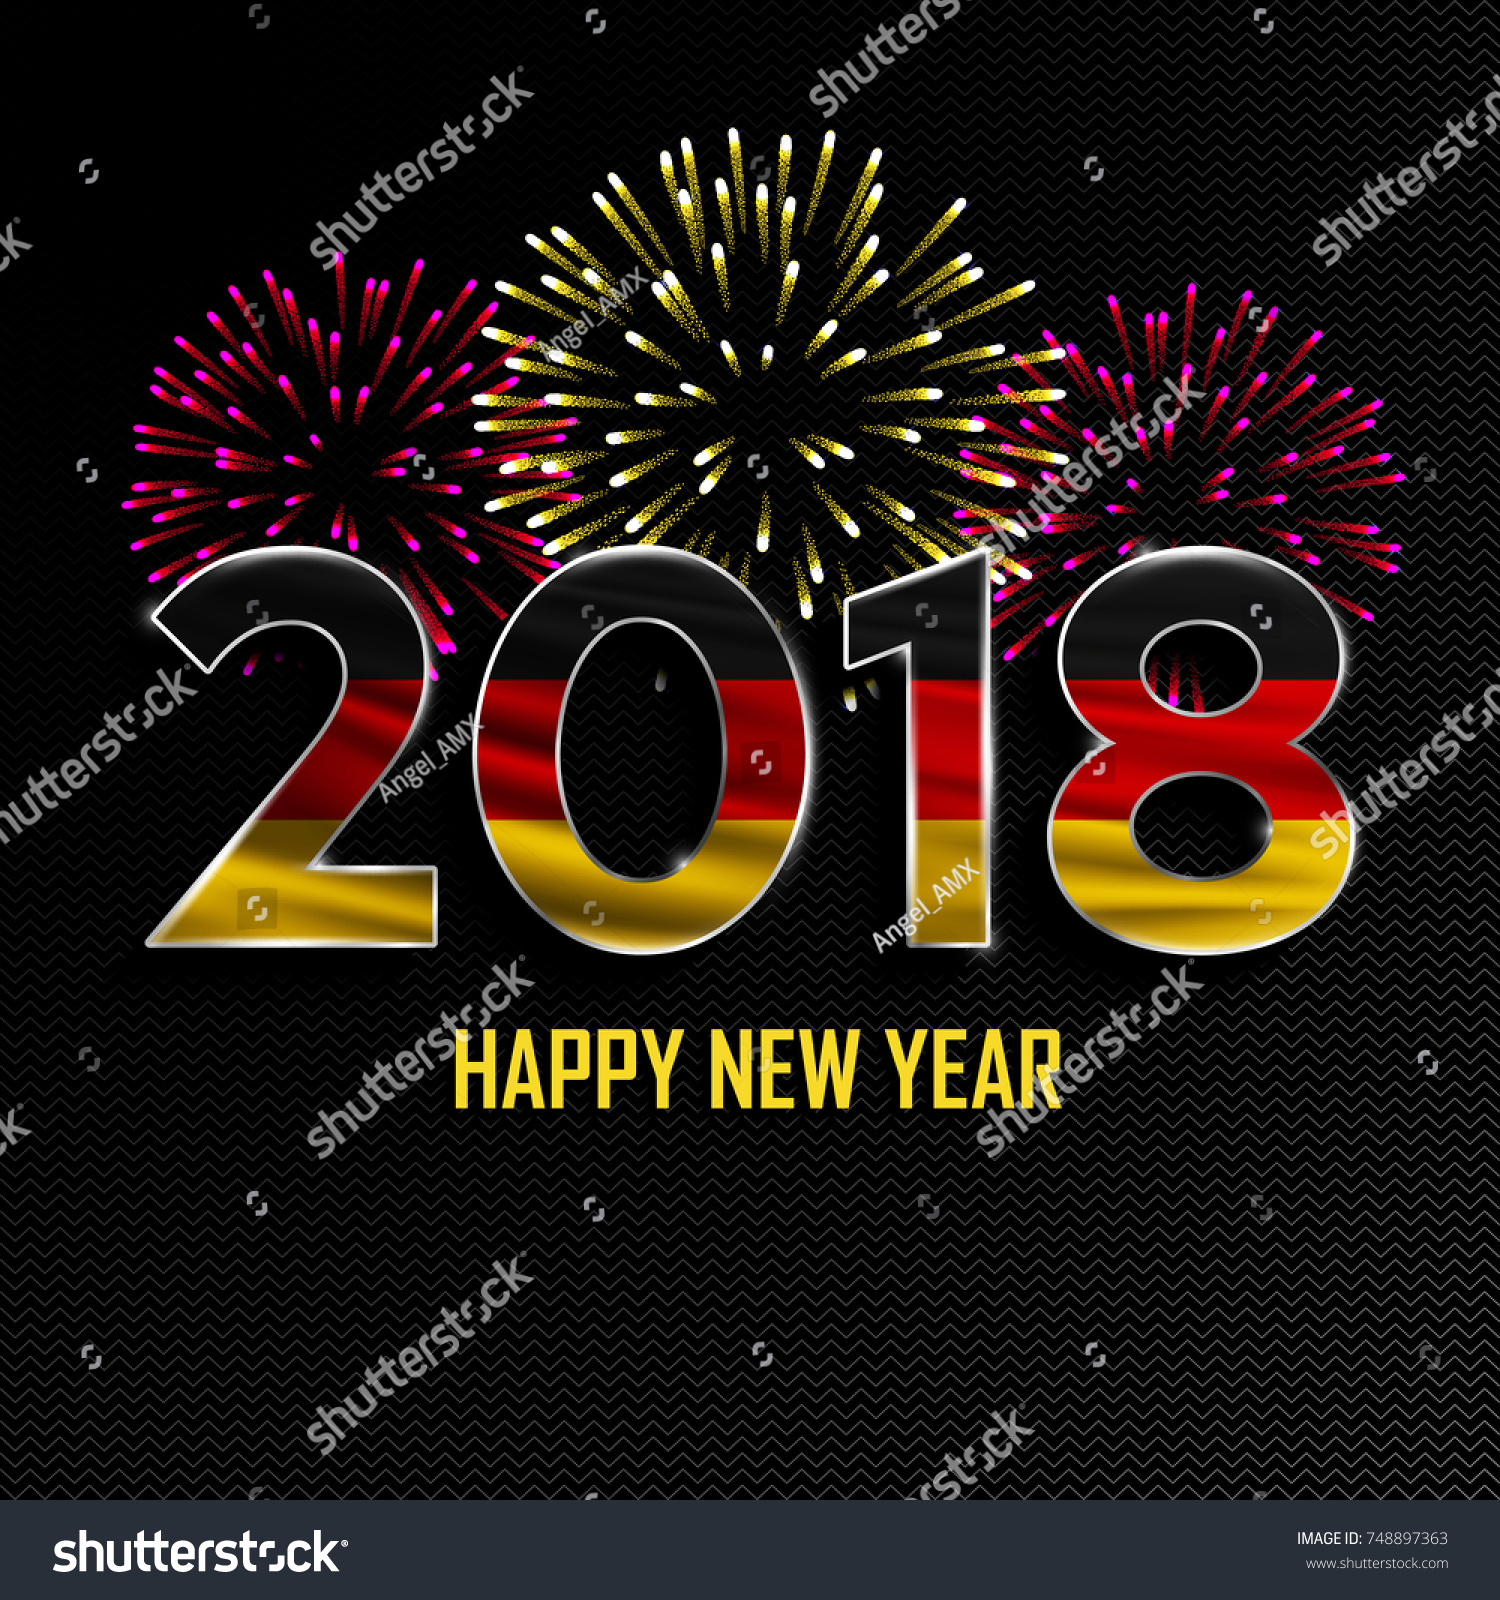 happy new year and merry christmas 2018 new year background with national flag of germany